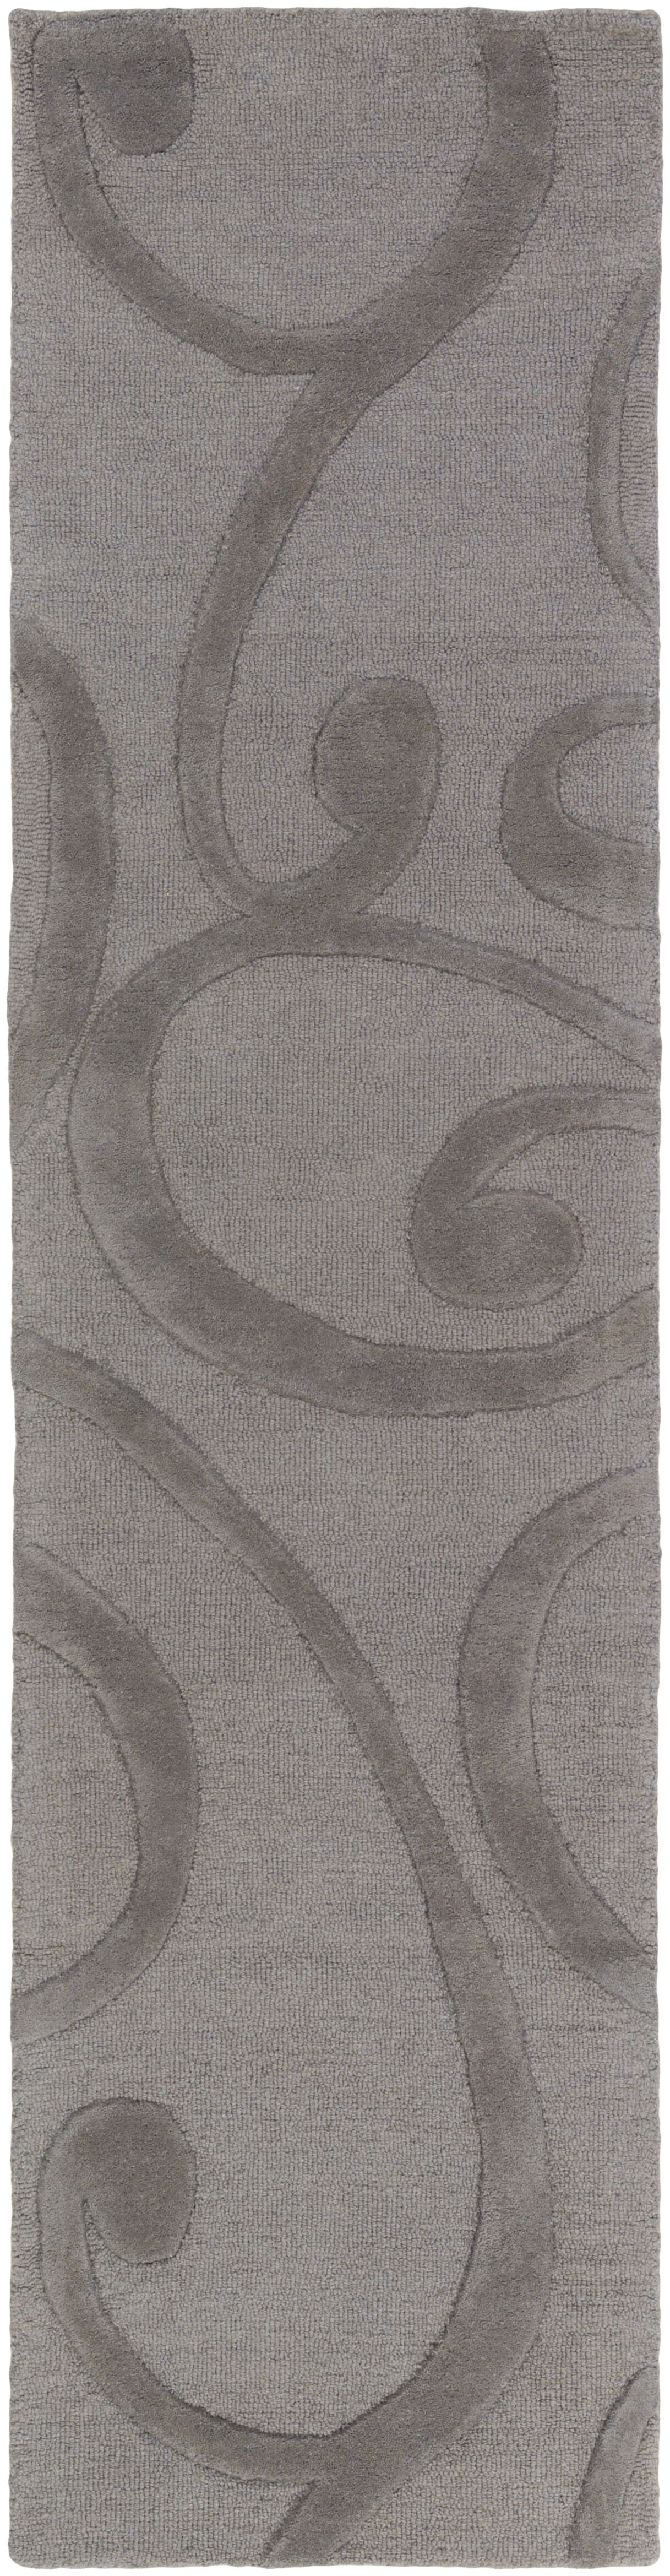 Allegro Hand-Tufted Dark Gray Area Rug Rug Size: Runner 2' x 8'